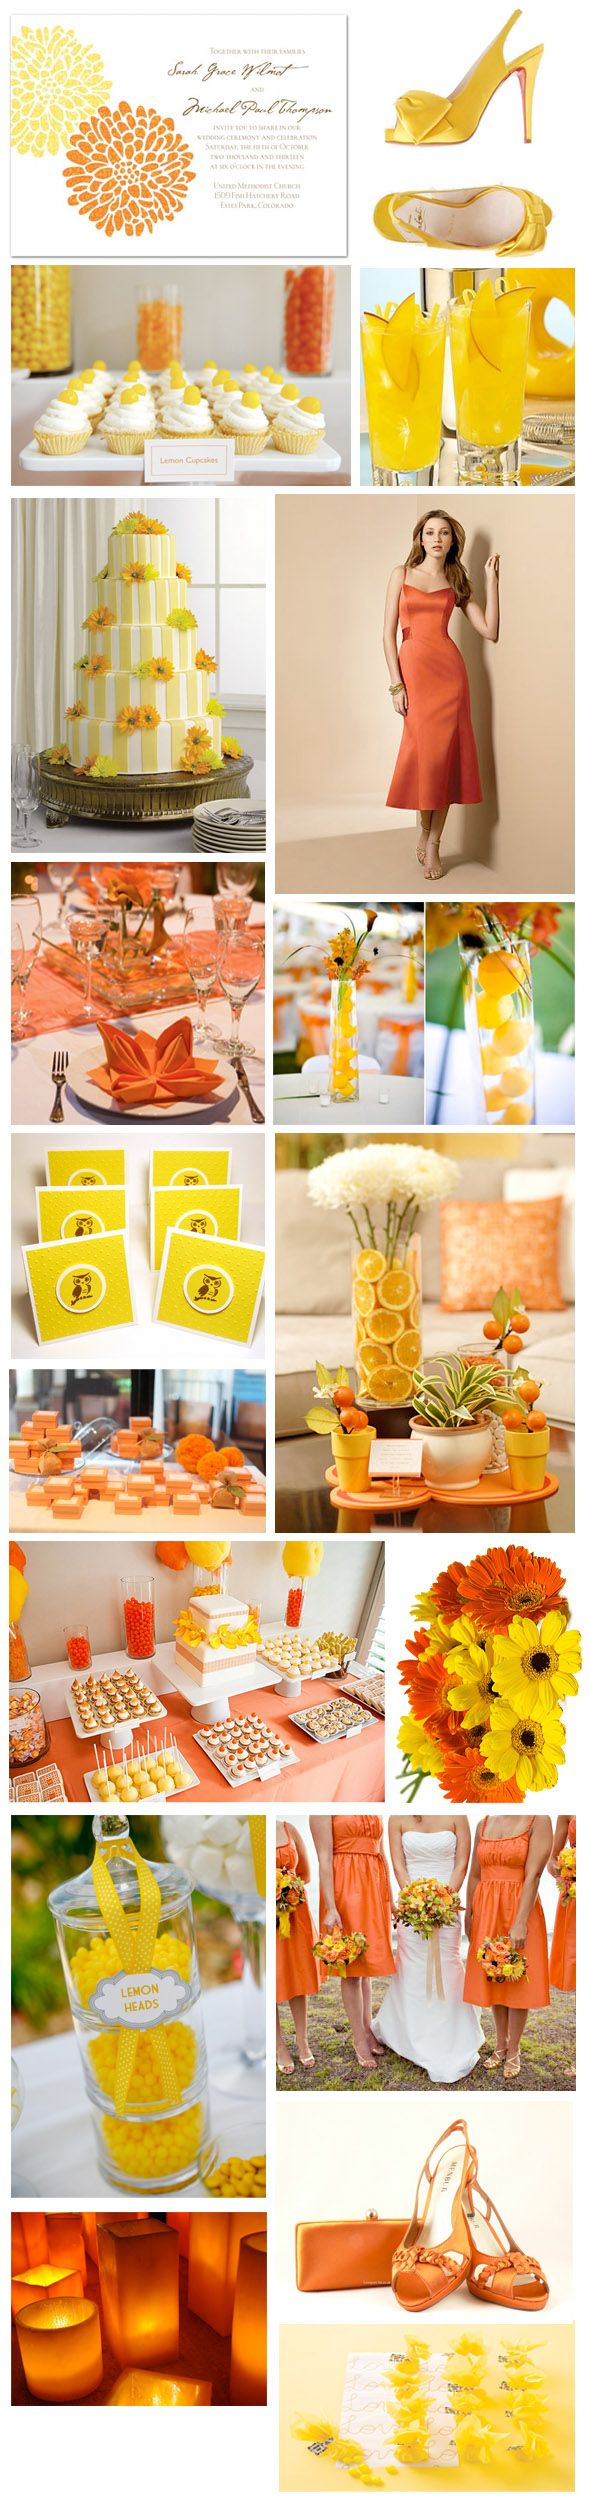 #OKLsummer -  bright-orange-and-yellow-summer-wedding-theme-colour-inspiration